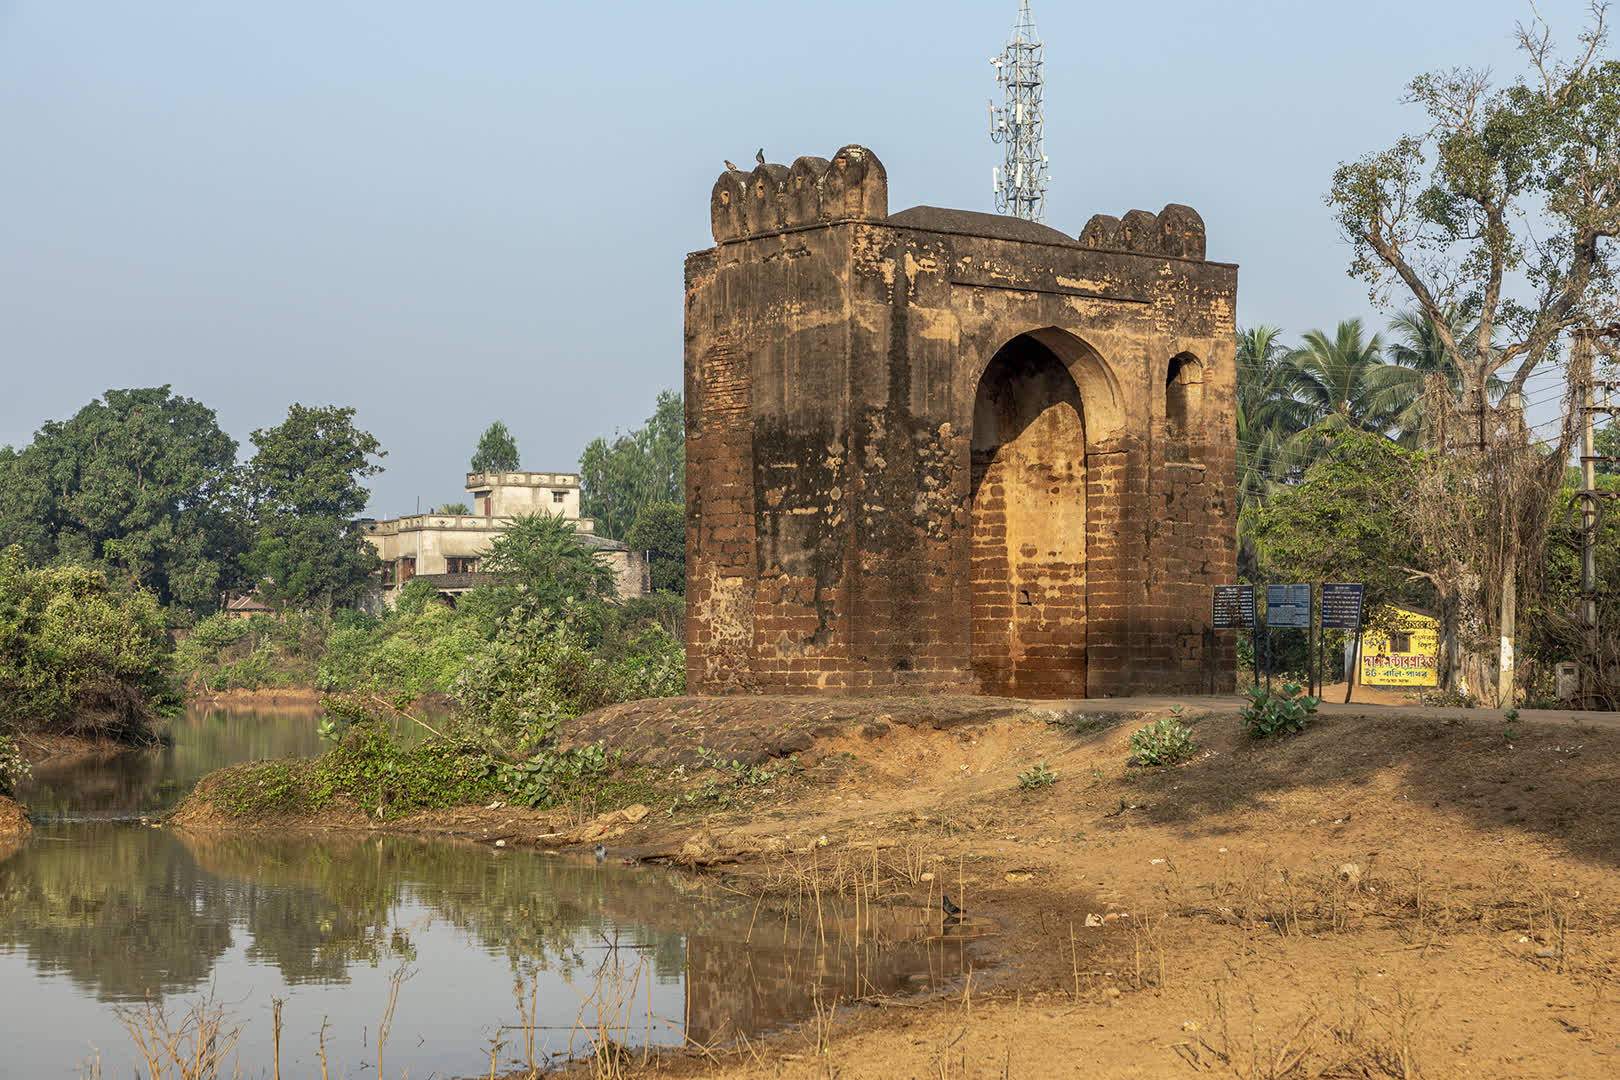 Smaller gate to the fort and remains of moat